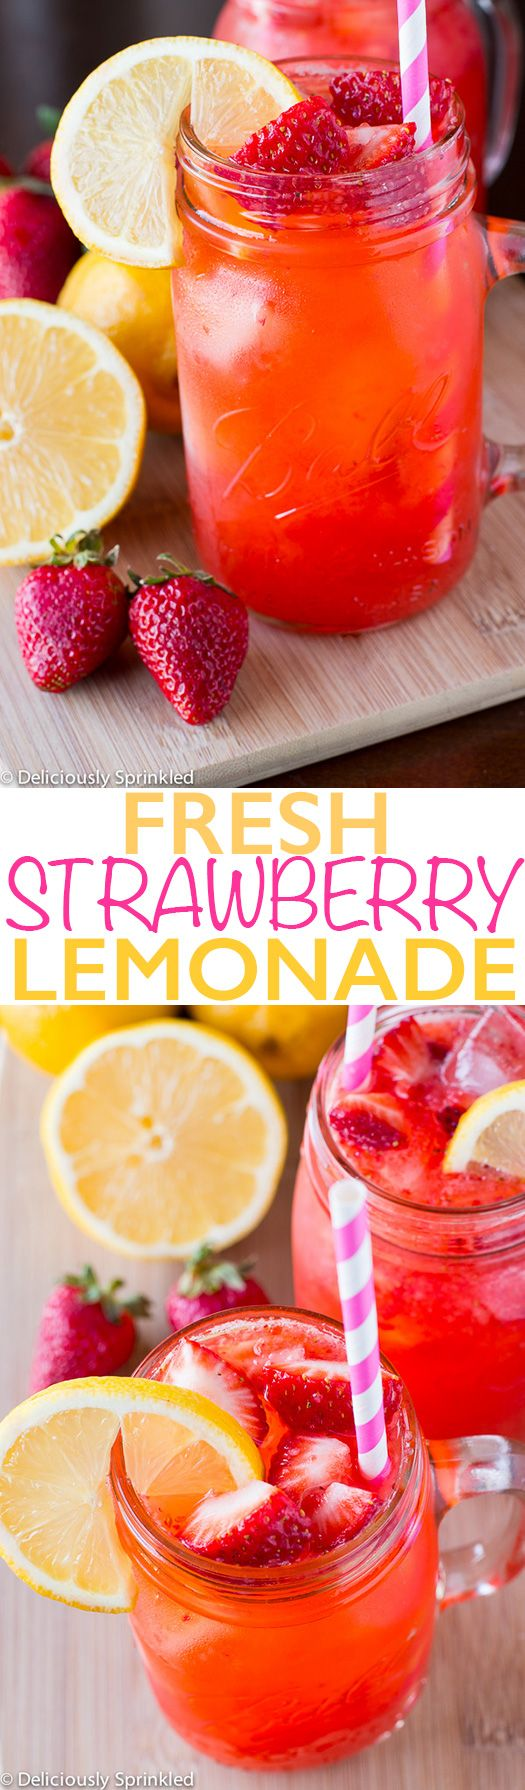 The BEST Fresh Strawberry Lemonade- perfect summer drink!